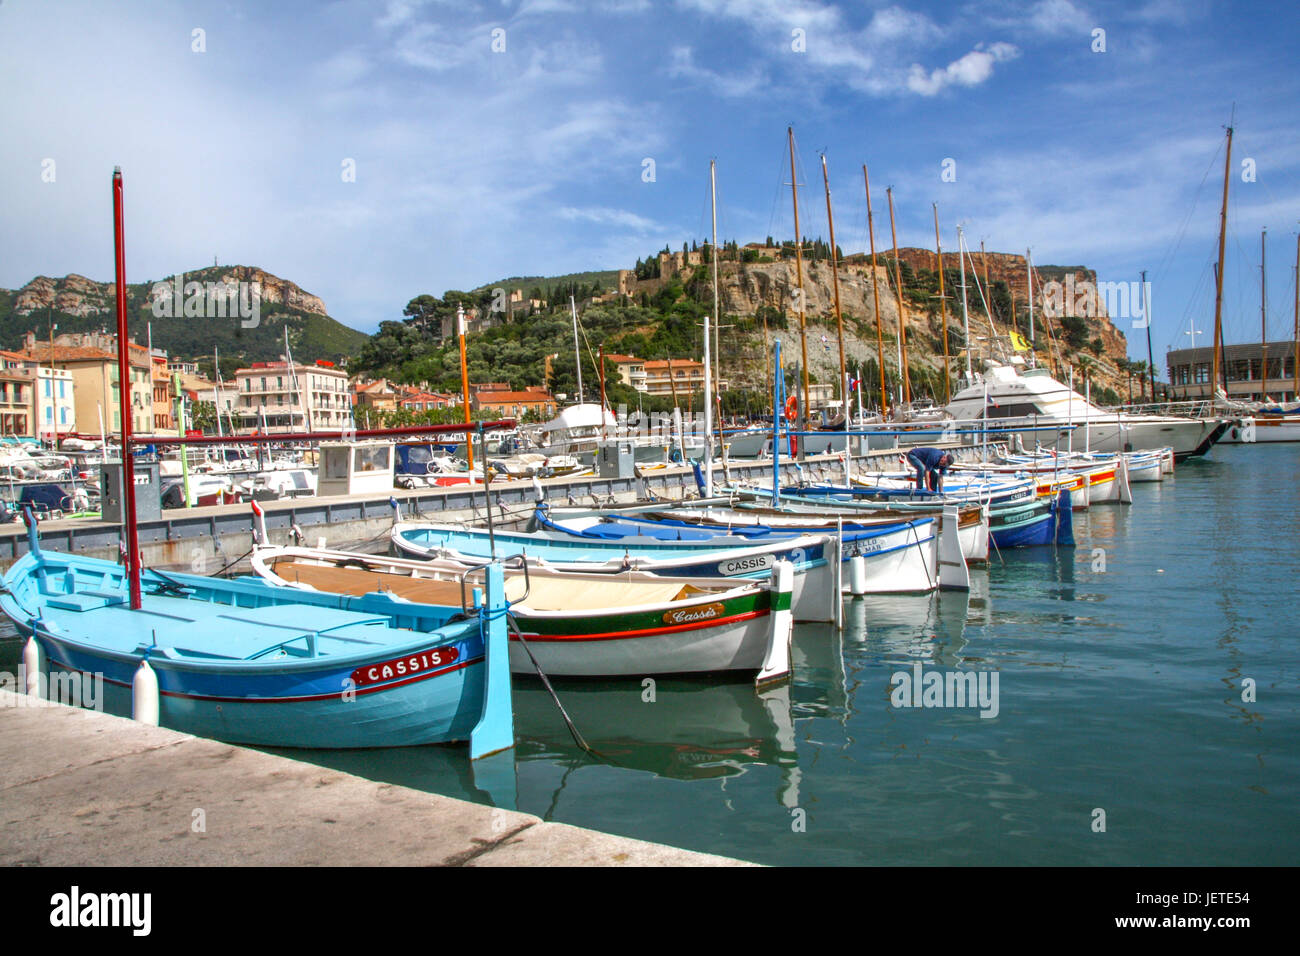 Barques dans le port de Cassis, Bouches-du-Rhône, France - Boats in Cassis harbour, Southern France Stock Photo